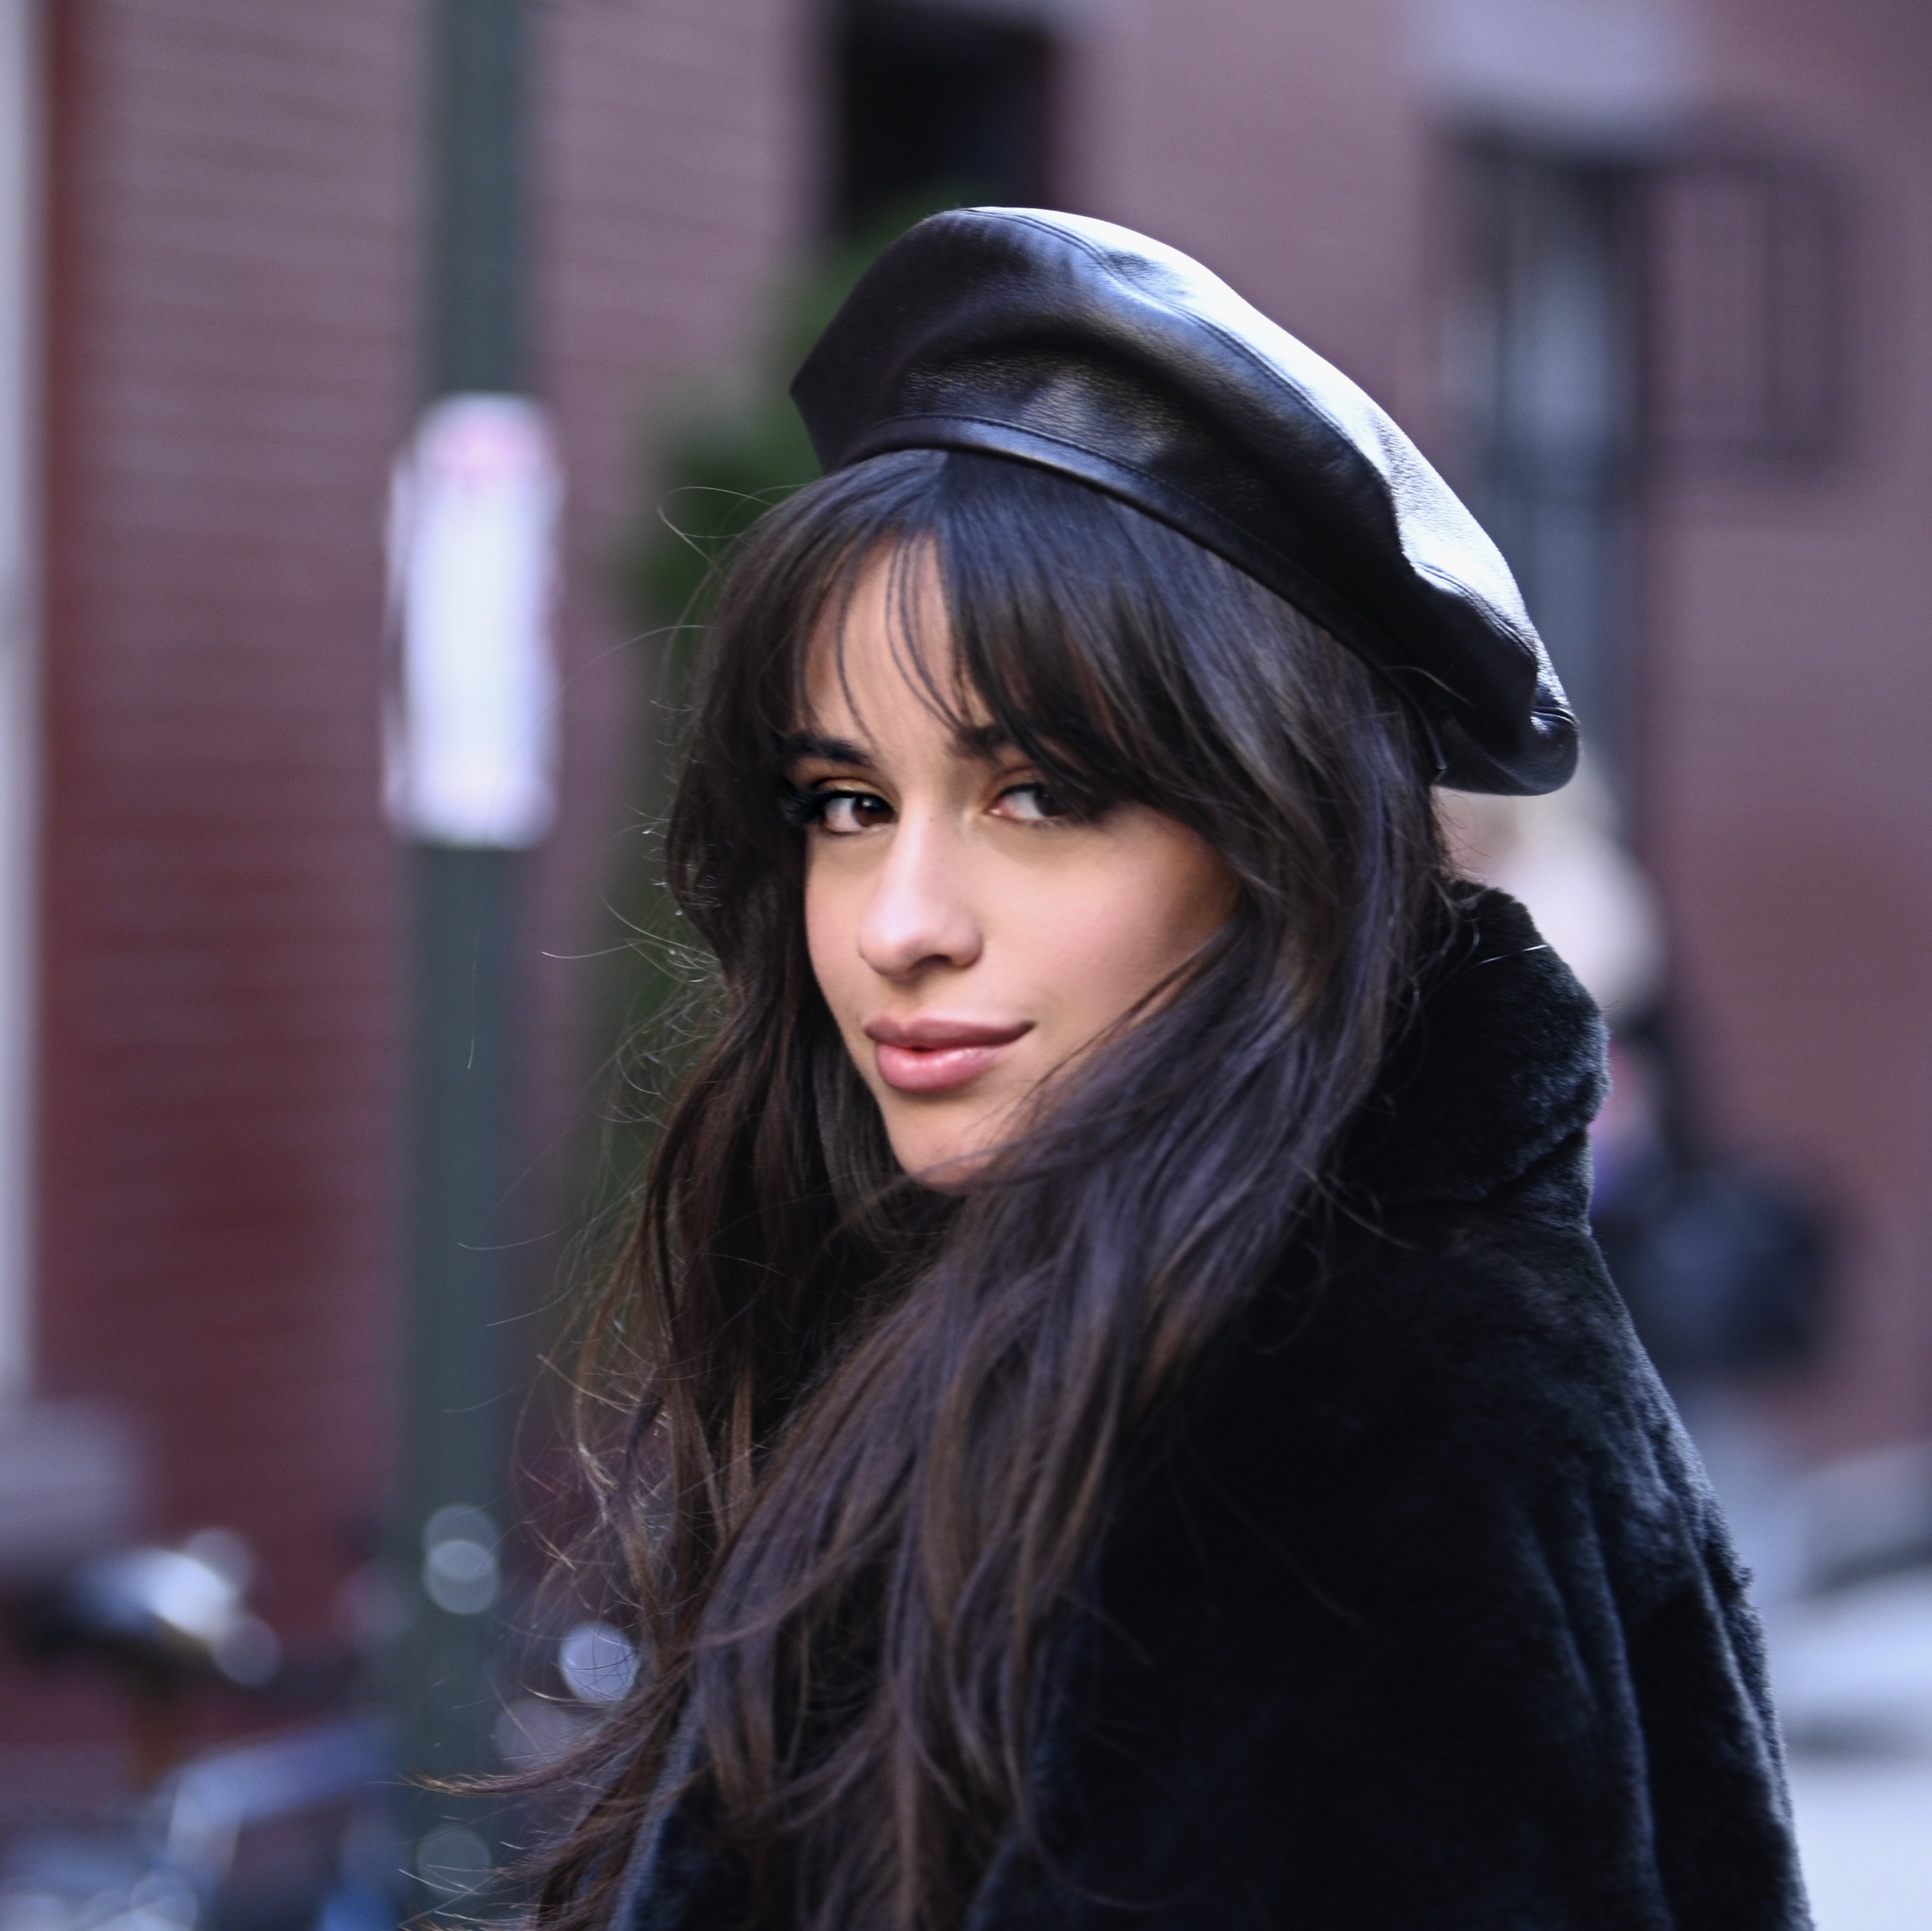 NEW YORK, NY - DECEMBER 06:  Singer Camila Cabello on set filming her new Mastercard ad which will highlight her collaboration and bring to life some of the exclusive experiences cardholders will enjoy.  (Photo by Dave Kotinsky/Getty Images for Mastercard)